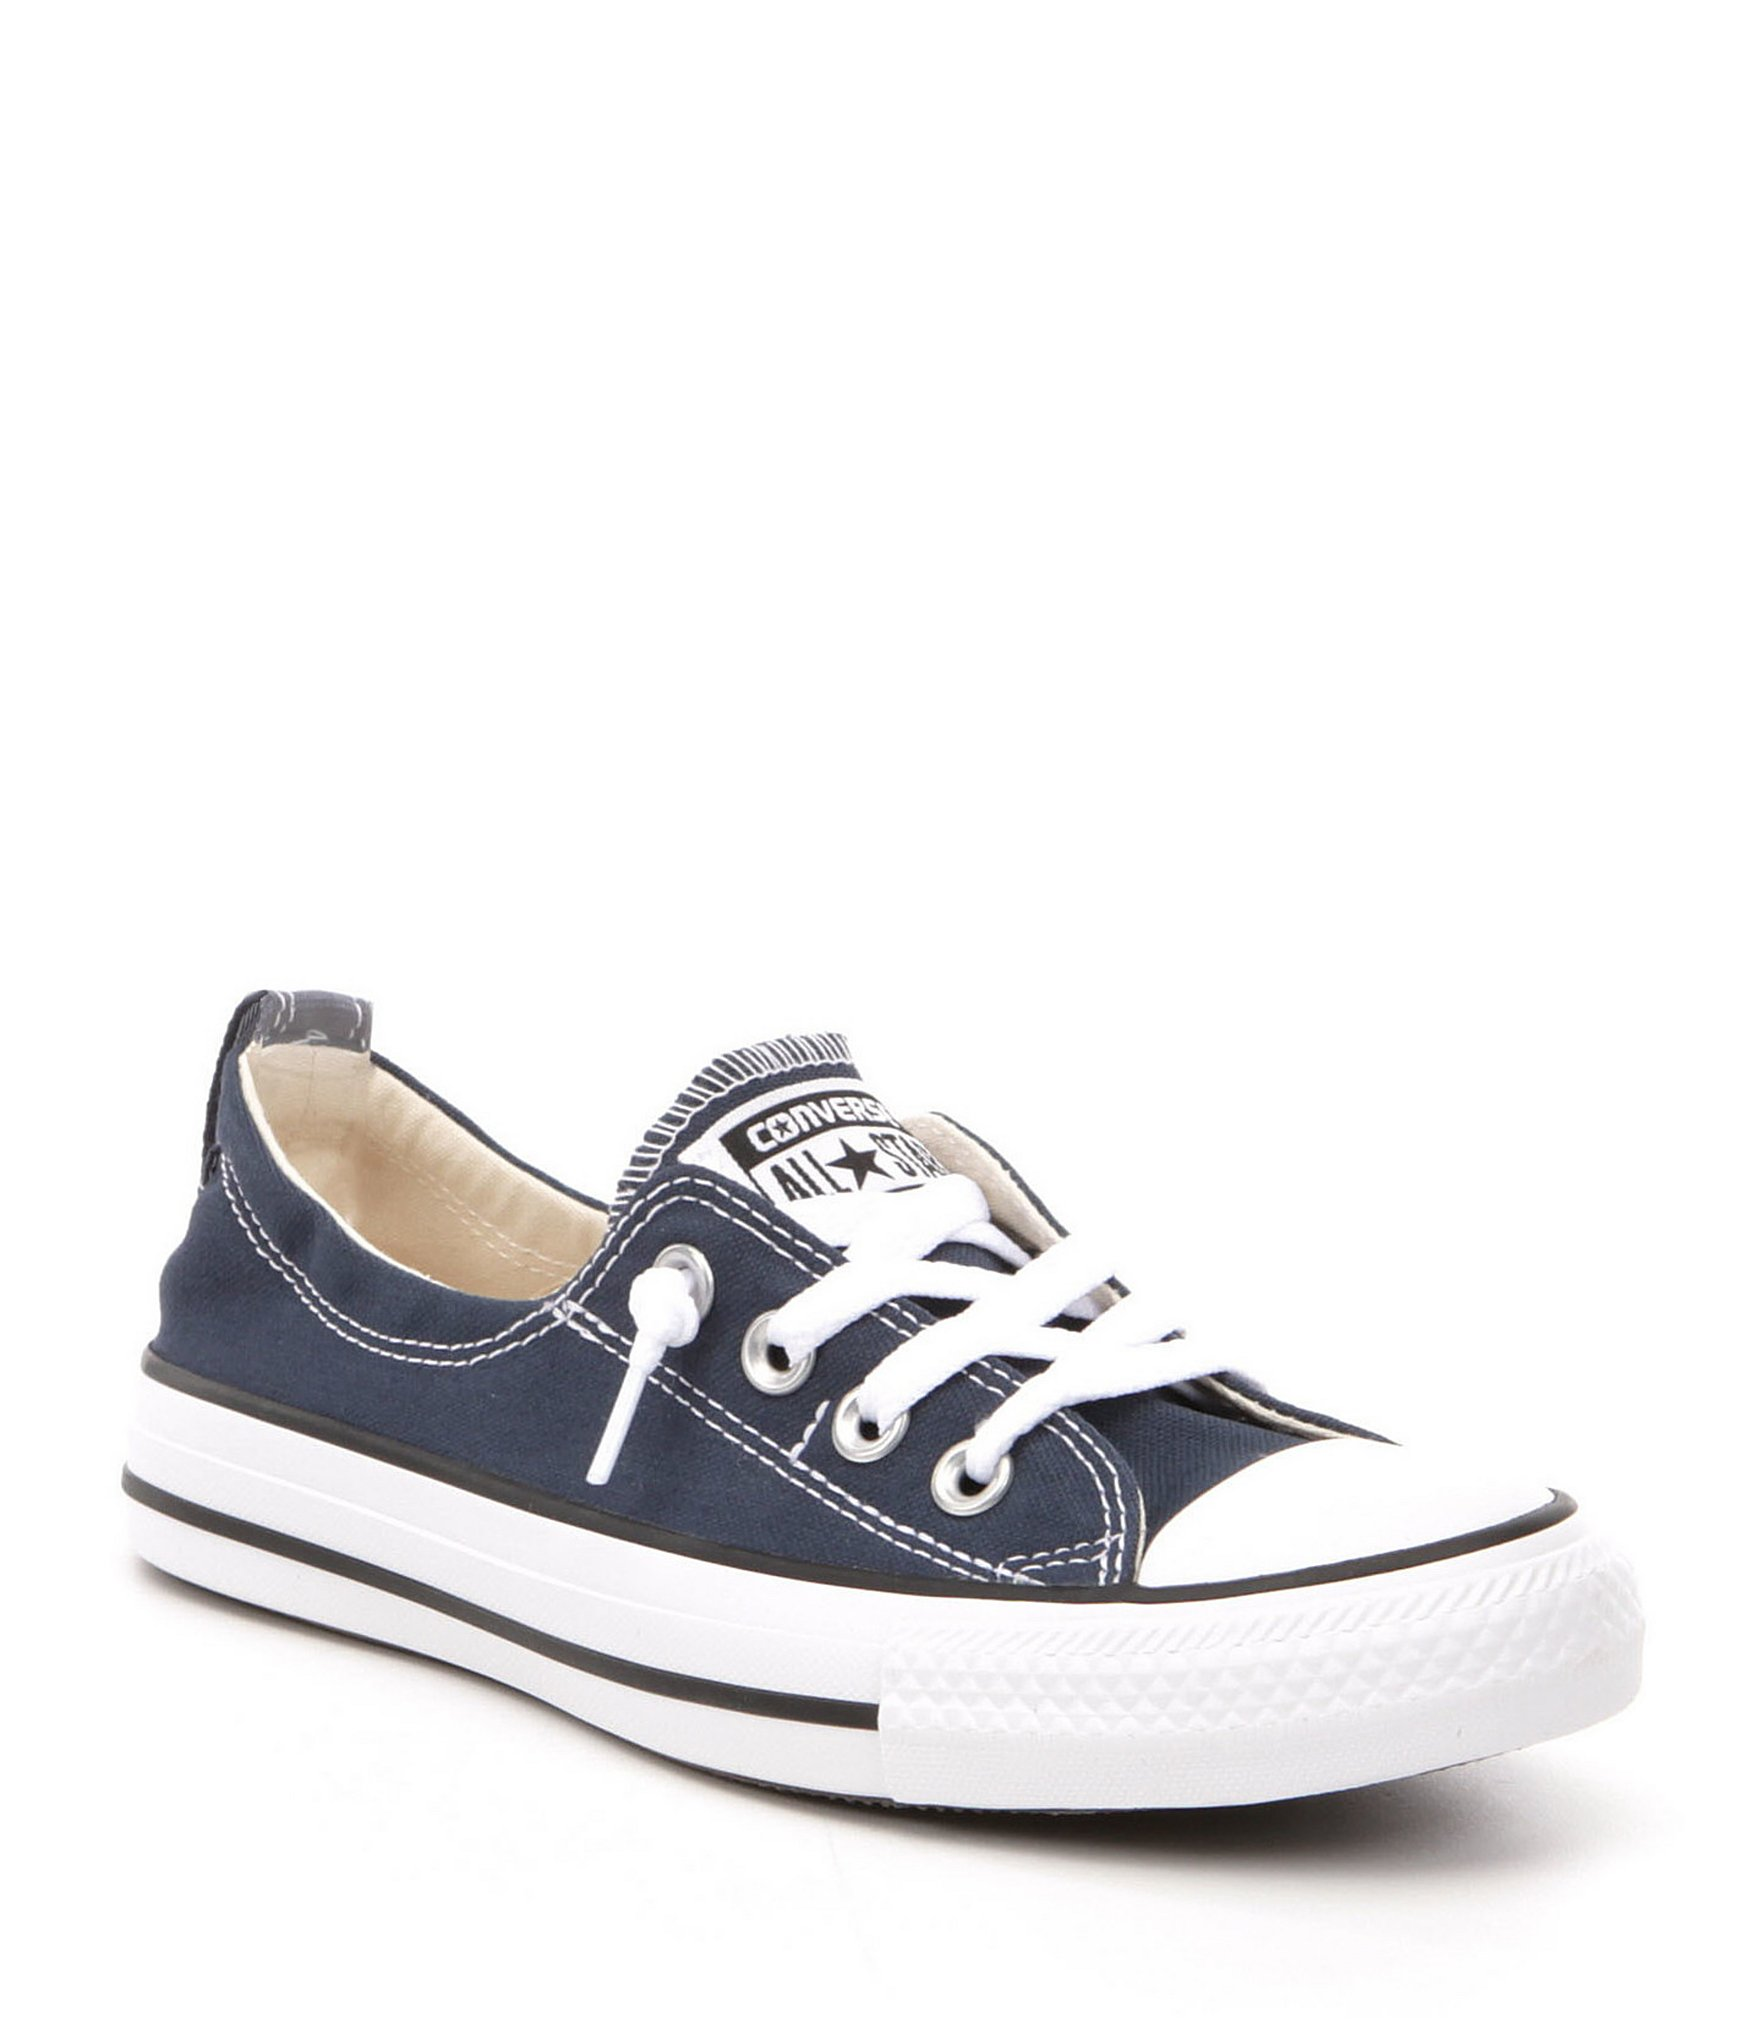 converse old style